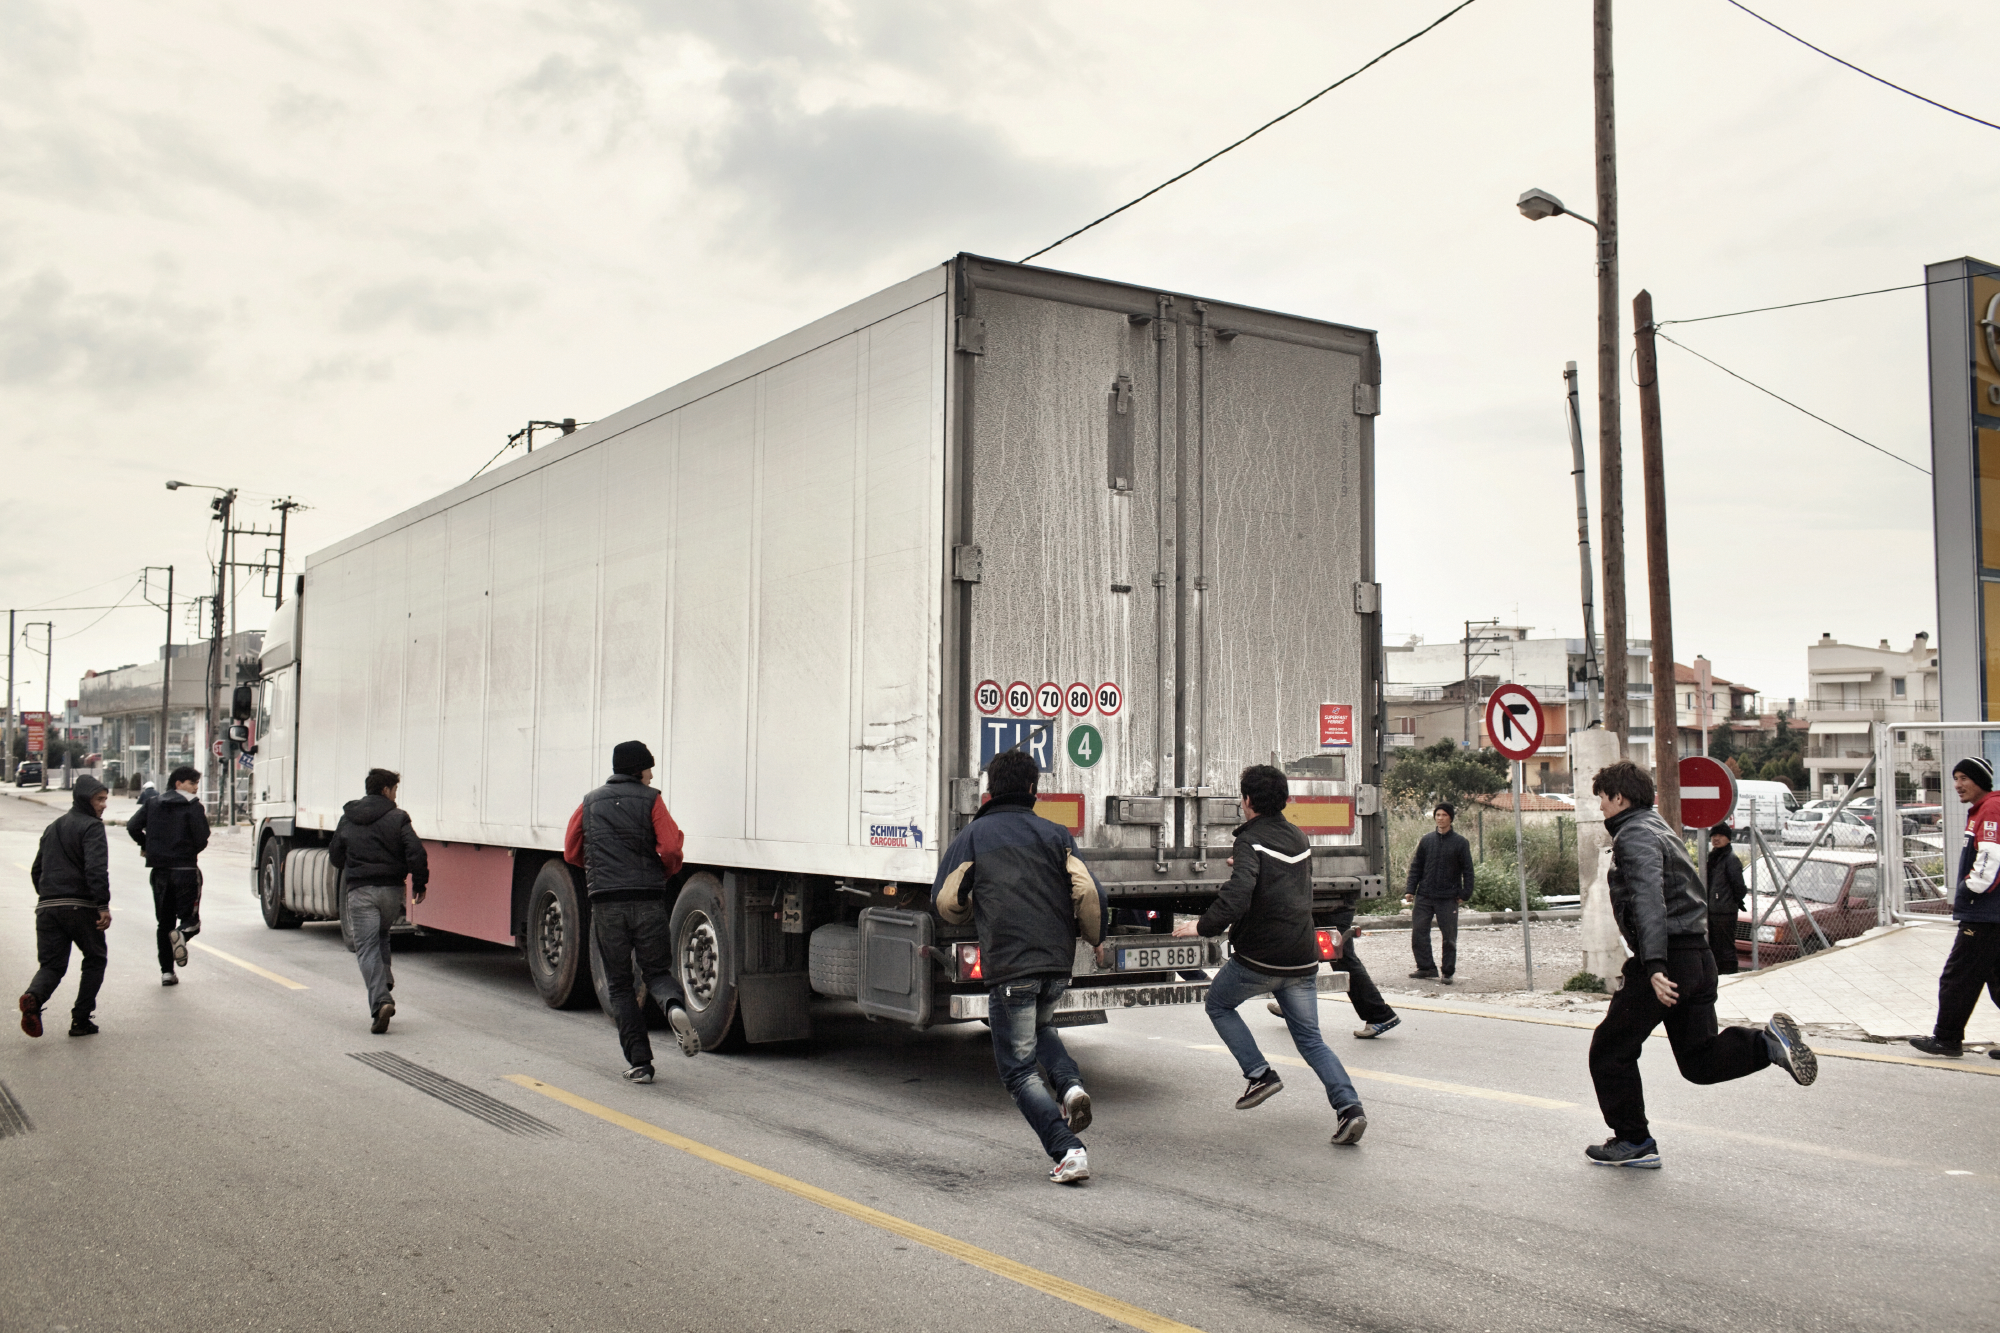 A group of adolescents are trying to board illegally a truck going to Italy. Only a very small percentage succeeds in this desperate attempt.